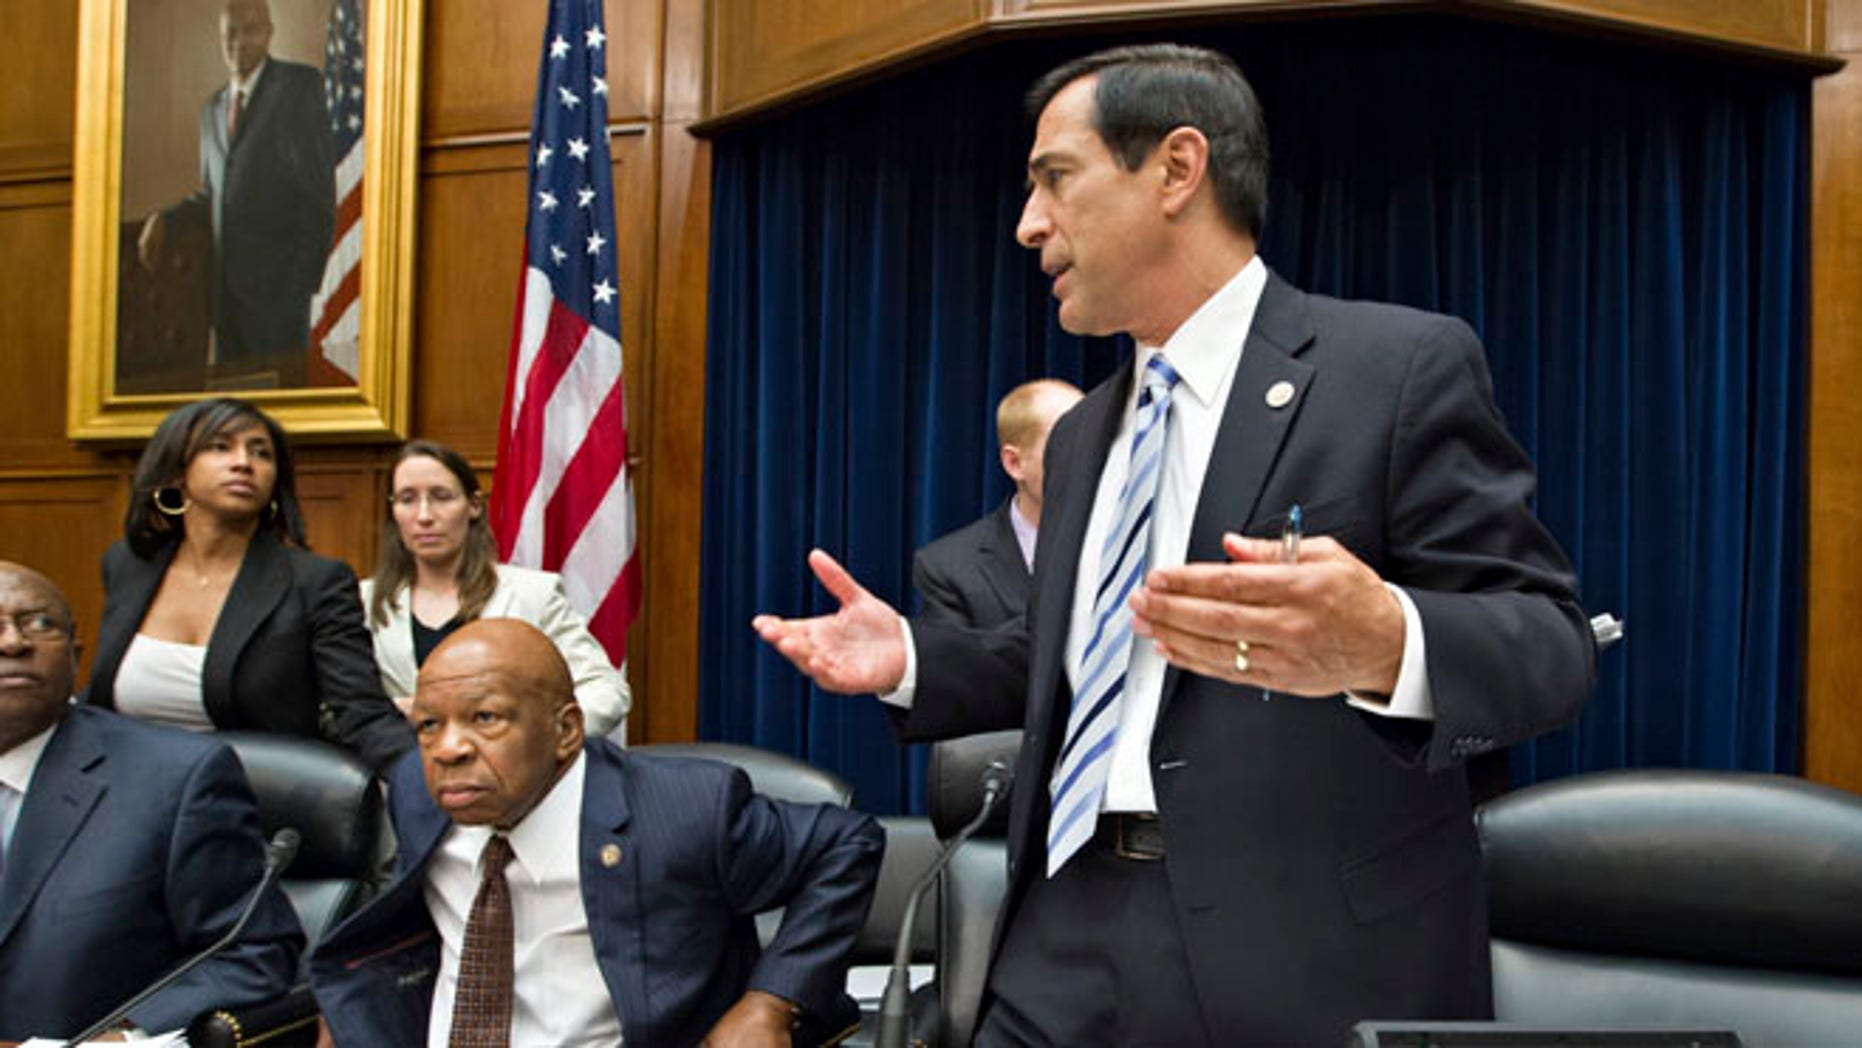 FILE: June 20, 2012: Rep. Darrell Issa, R-Calif., right, adjourns a meeting of the House Oversight and Government Reform Committee, in Washington, D.C.